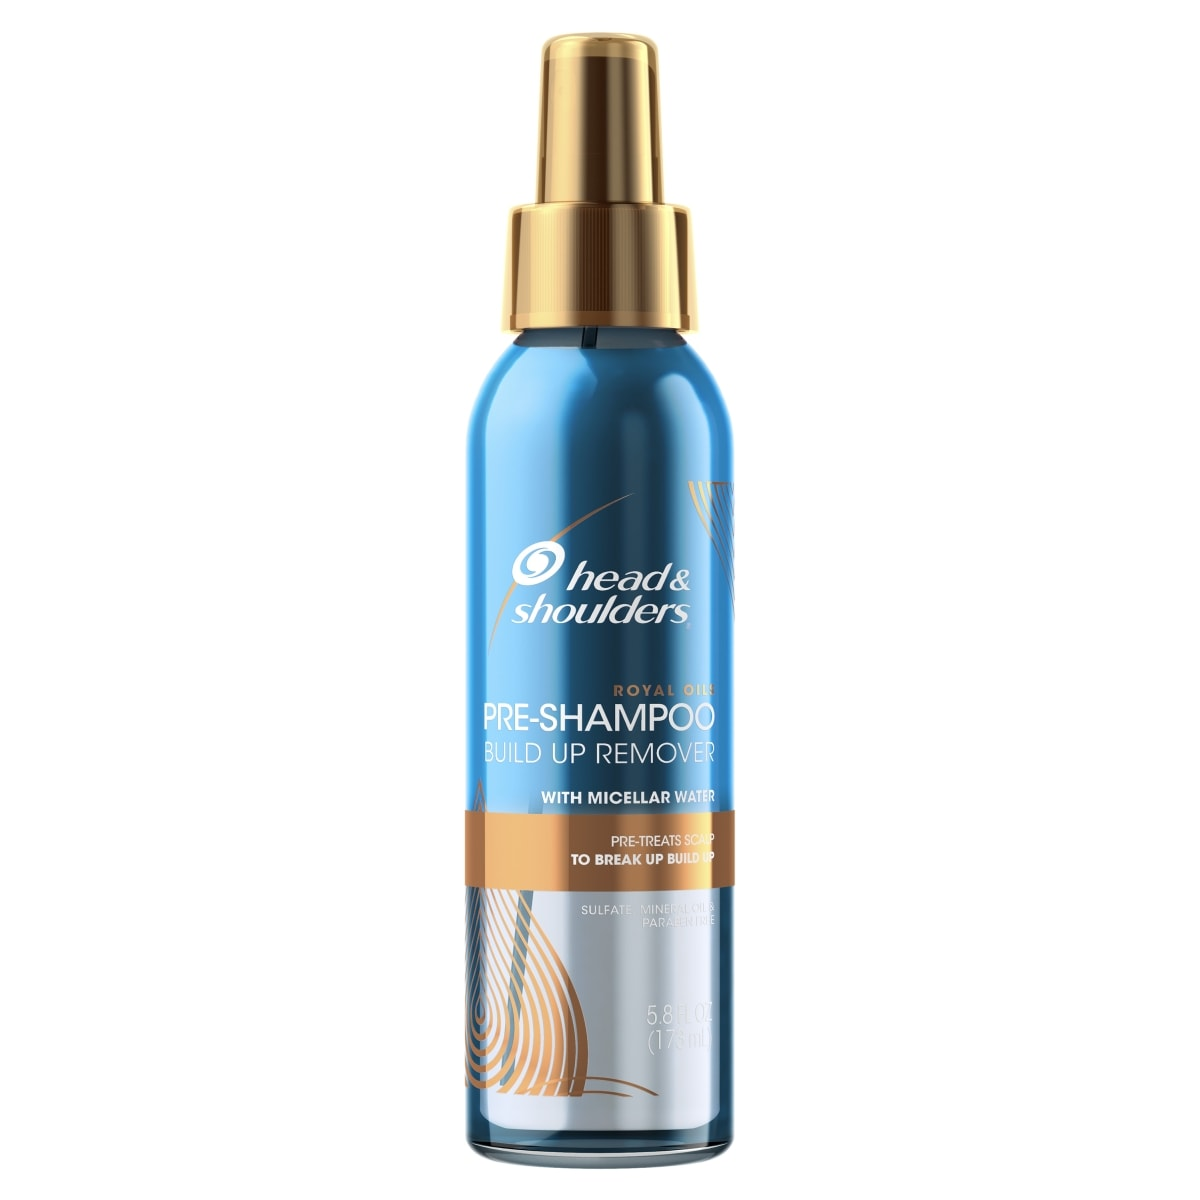 Head & Shoulders Royal Oils Pre-Shampoo Build Up Remover